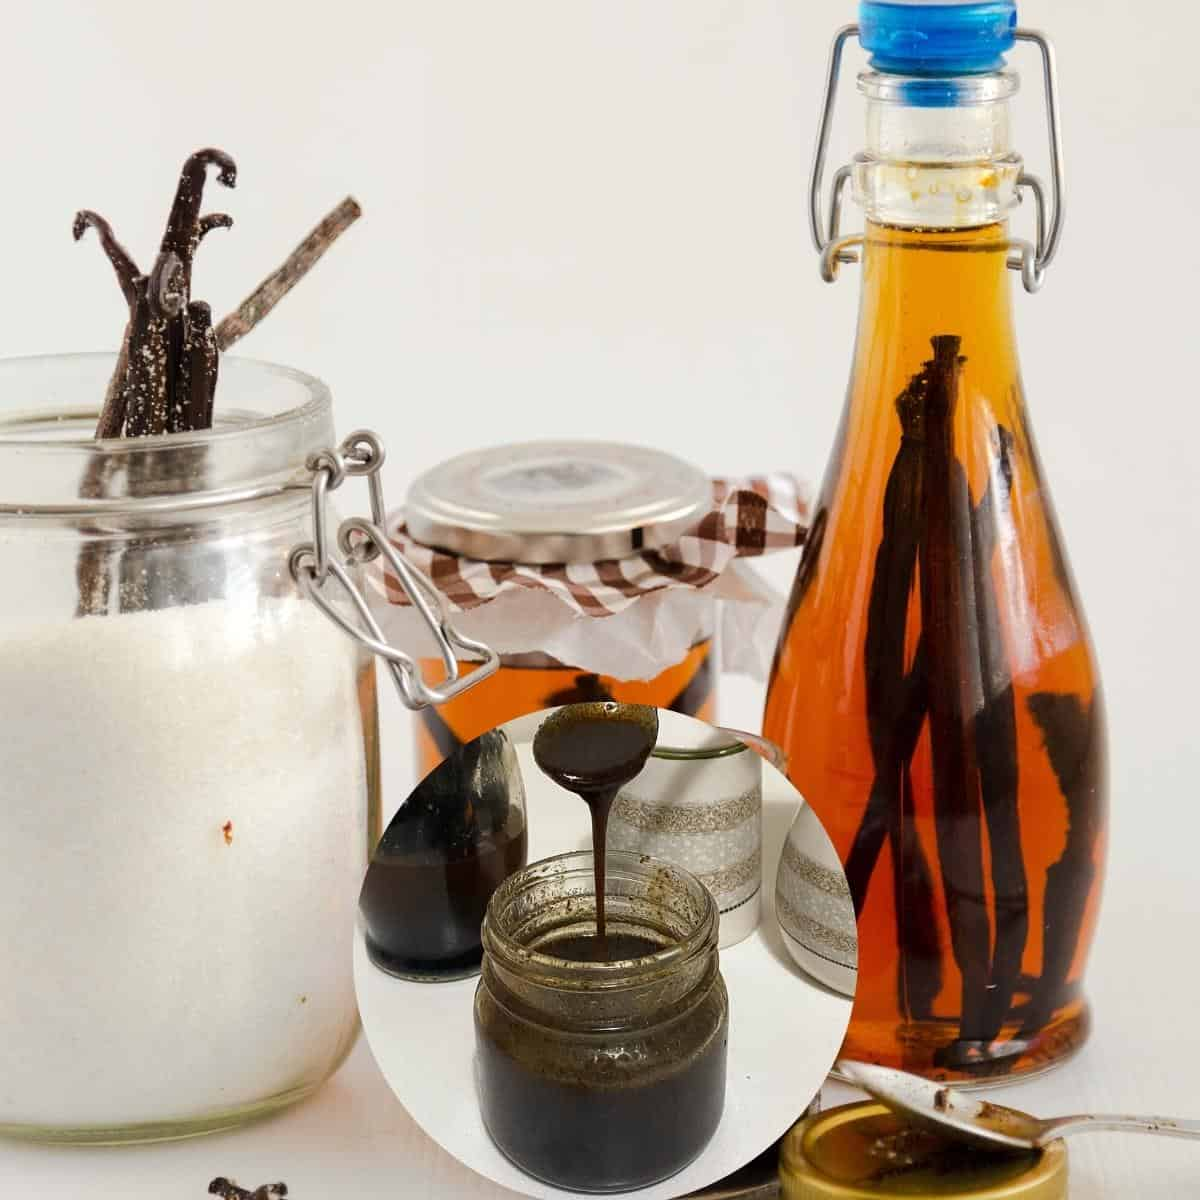 All vanilla products - extract, bean paste, and sugar